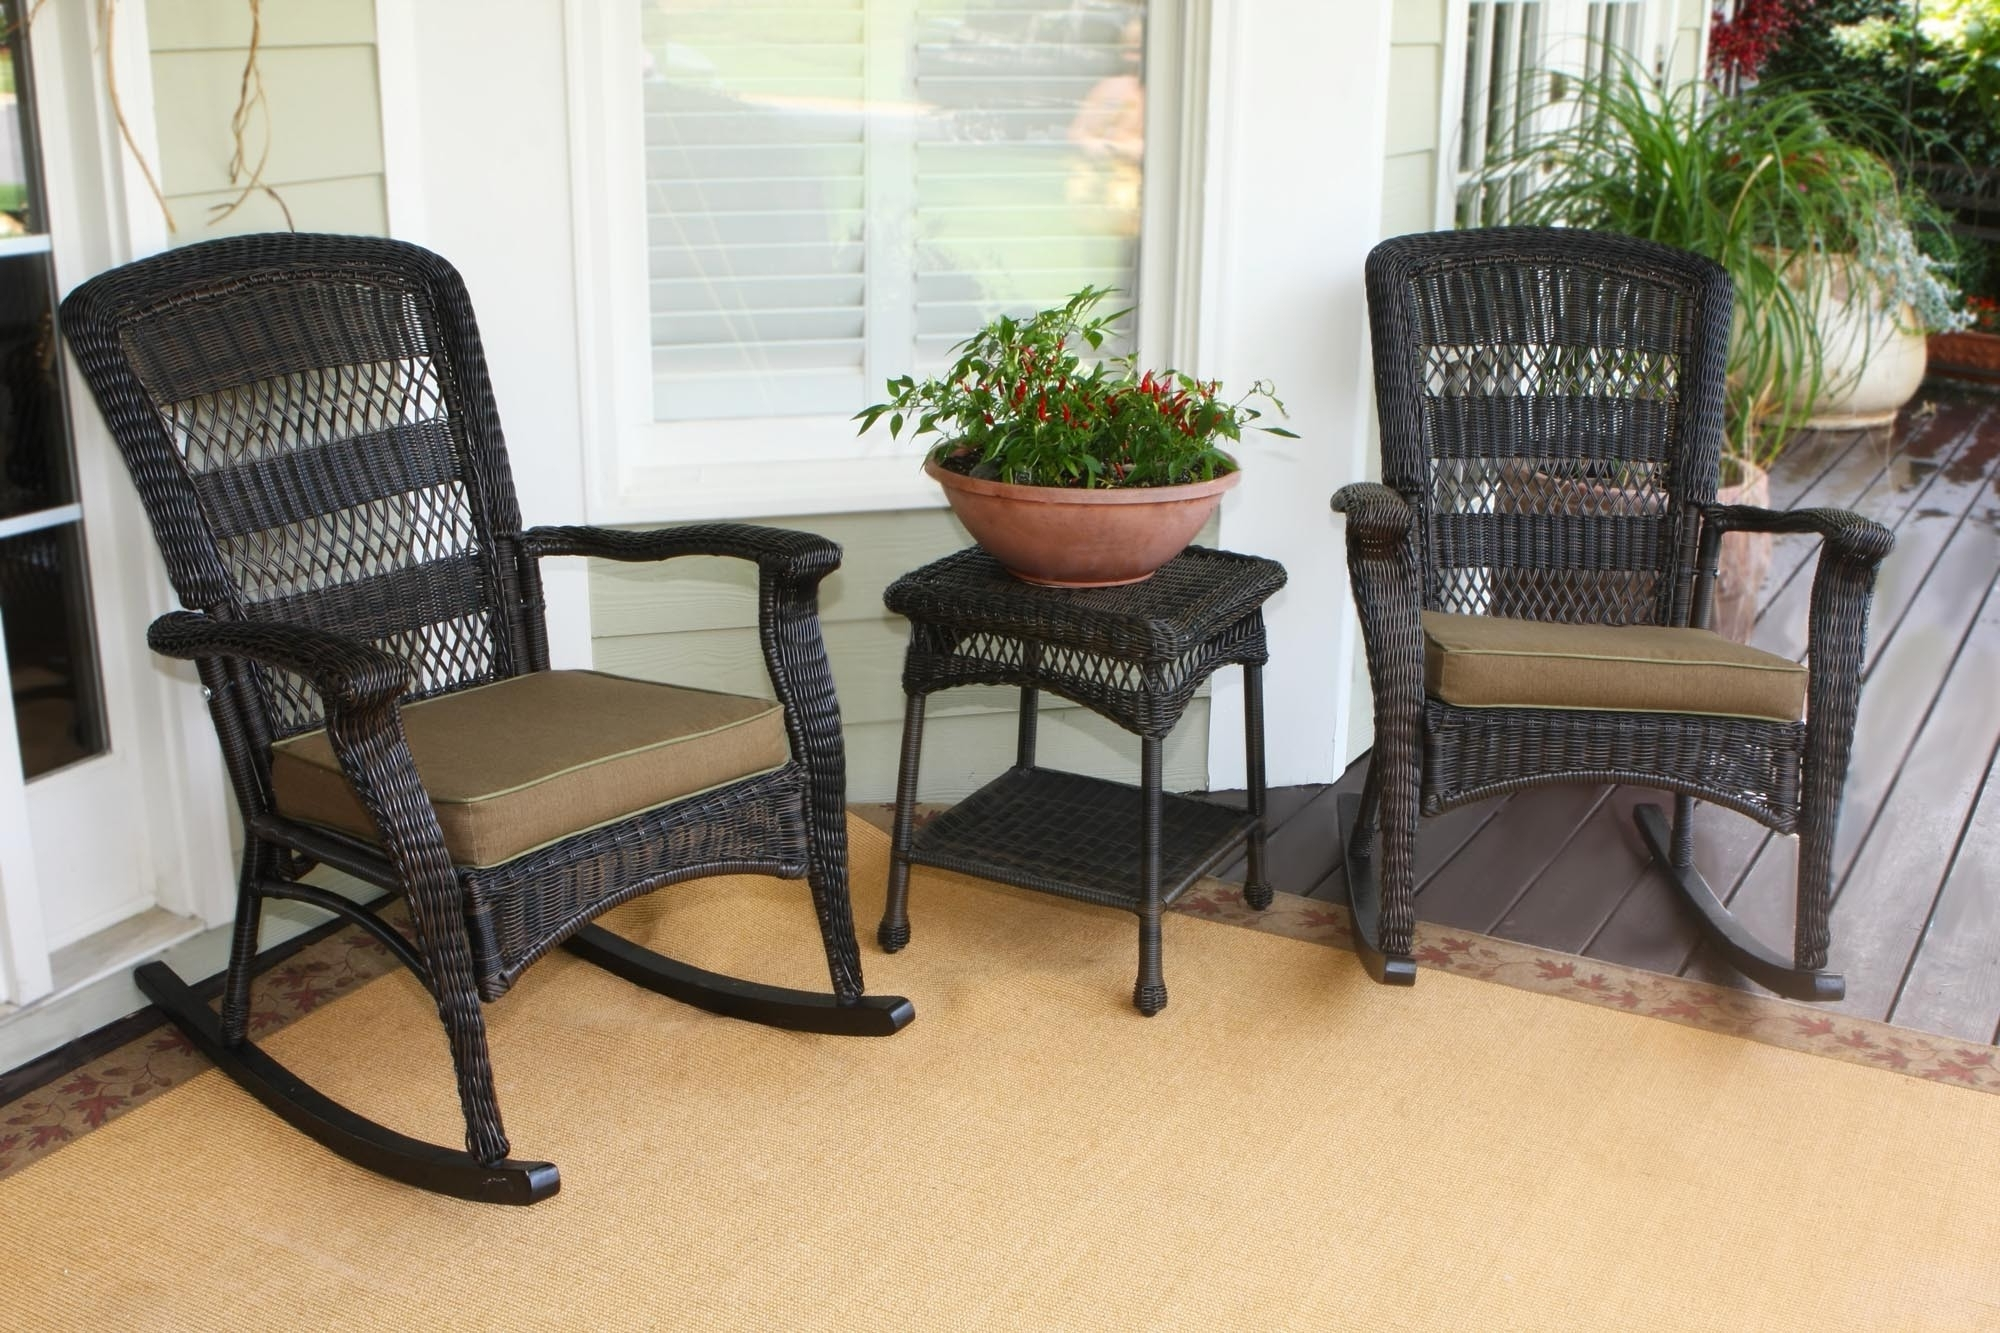 Inexpensive Patio Rocking Chairs Throughout Well Known Lovely Cheap Patio Chairs Semco Recycled Plastic Rocking Chair (Gallery 19 of 20)